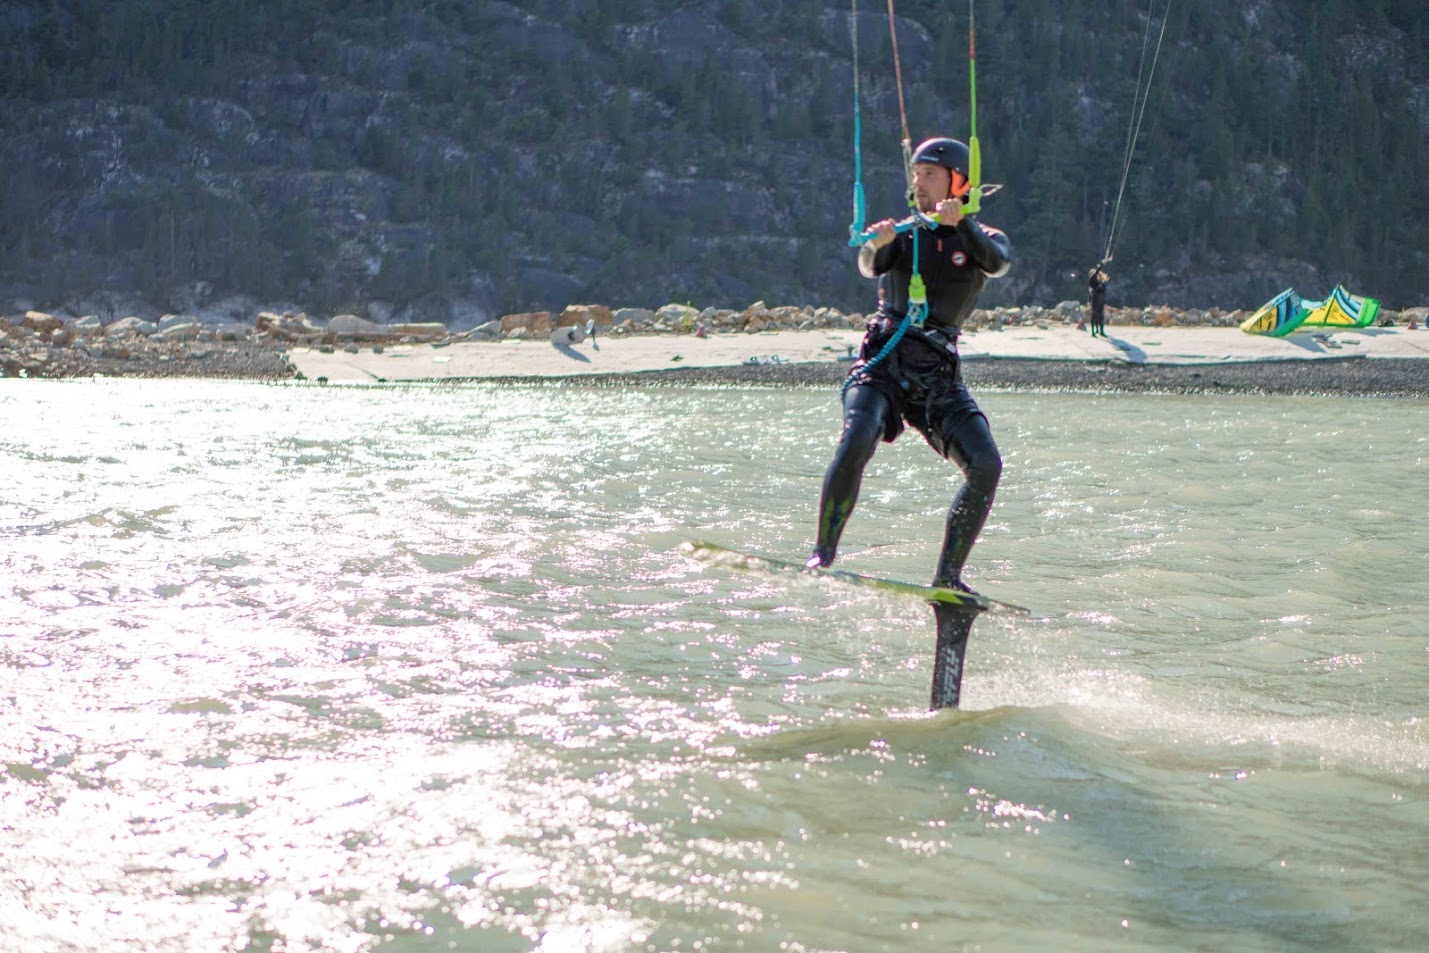 Get amazing Kitesurf lessons with the Aerial Kiteboarding School, Squamish Watersports Ltd